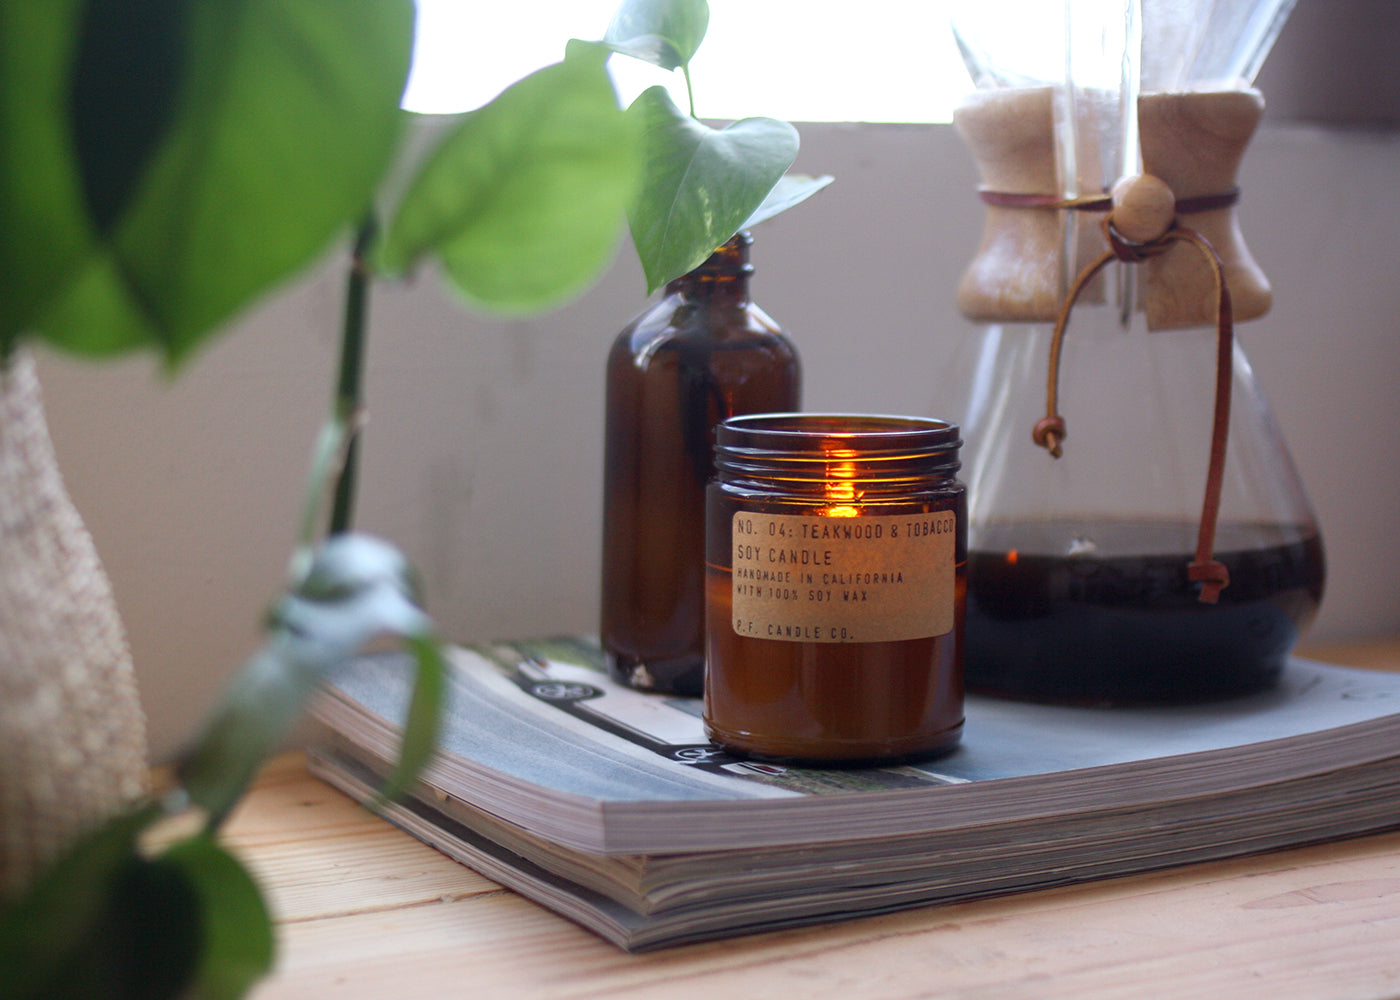 P.F. Candle Co Soy Candle Teakwood & Tobbaco